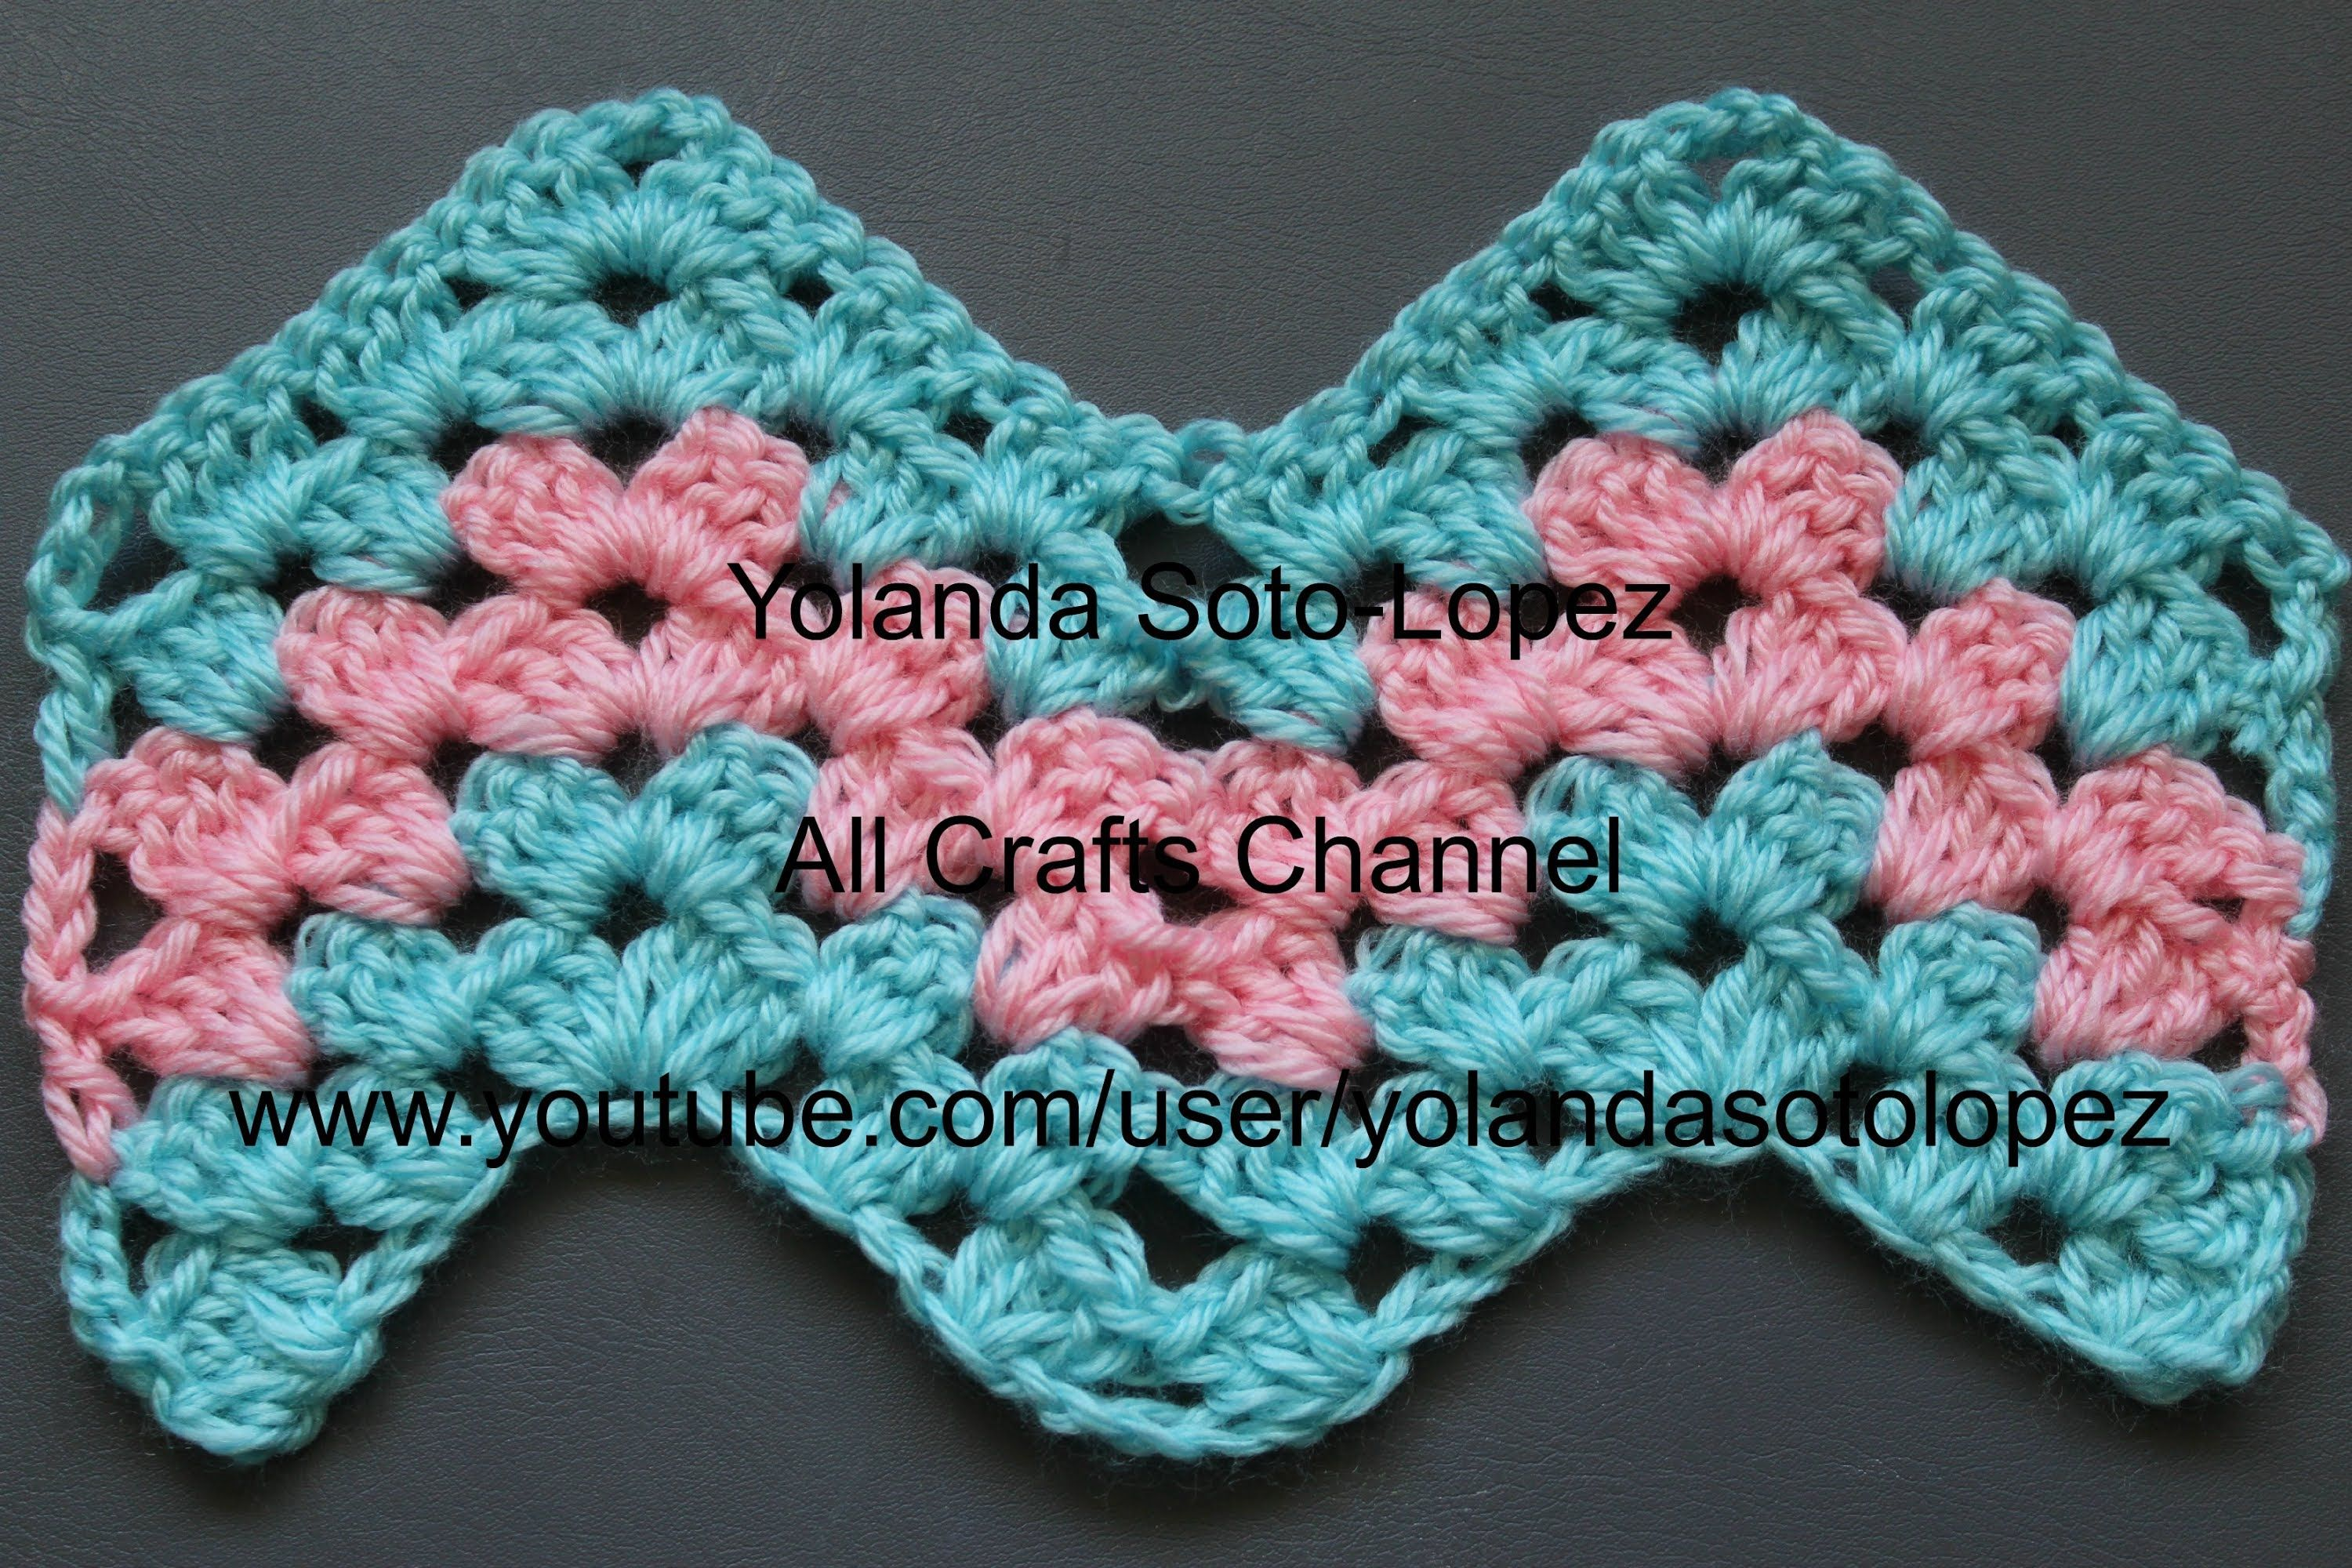 Crochet Granny Ripple Pattern | Crochet chevron | Pinterest ...